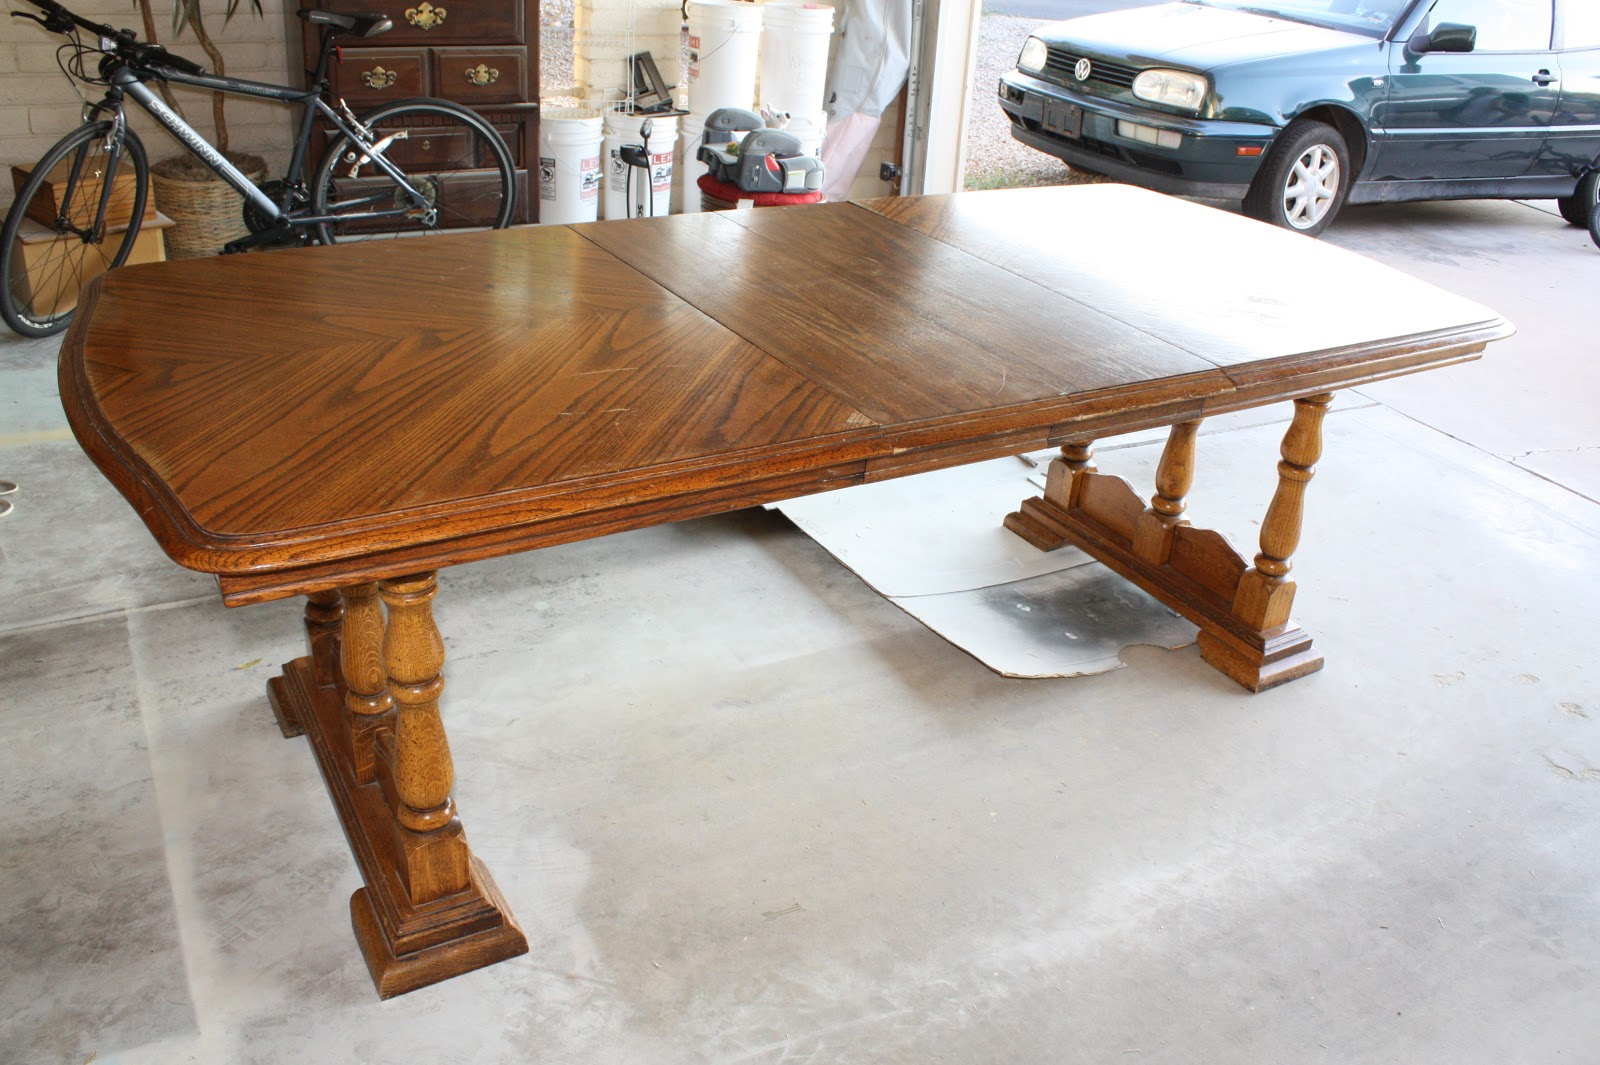 How to refinish wood buffet how to refinish wood dining table how to refinish wood side table - Refinished kitchen tables ...